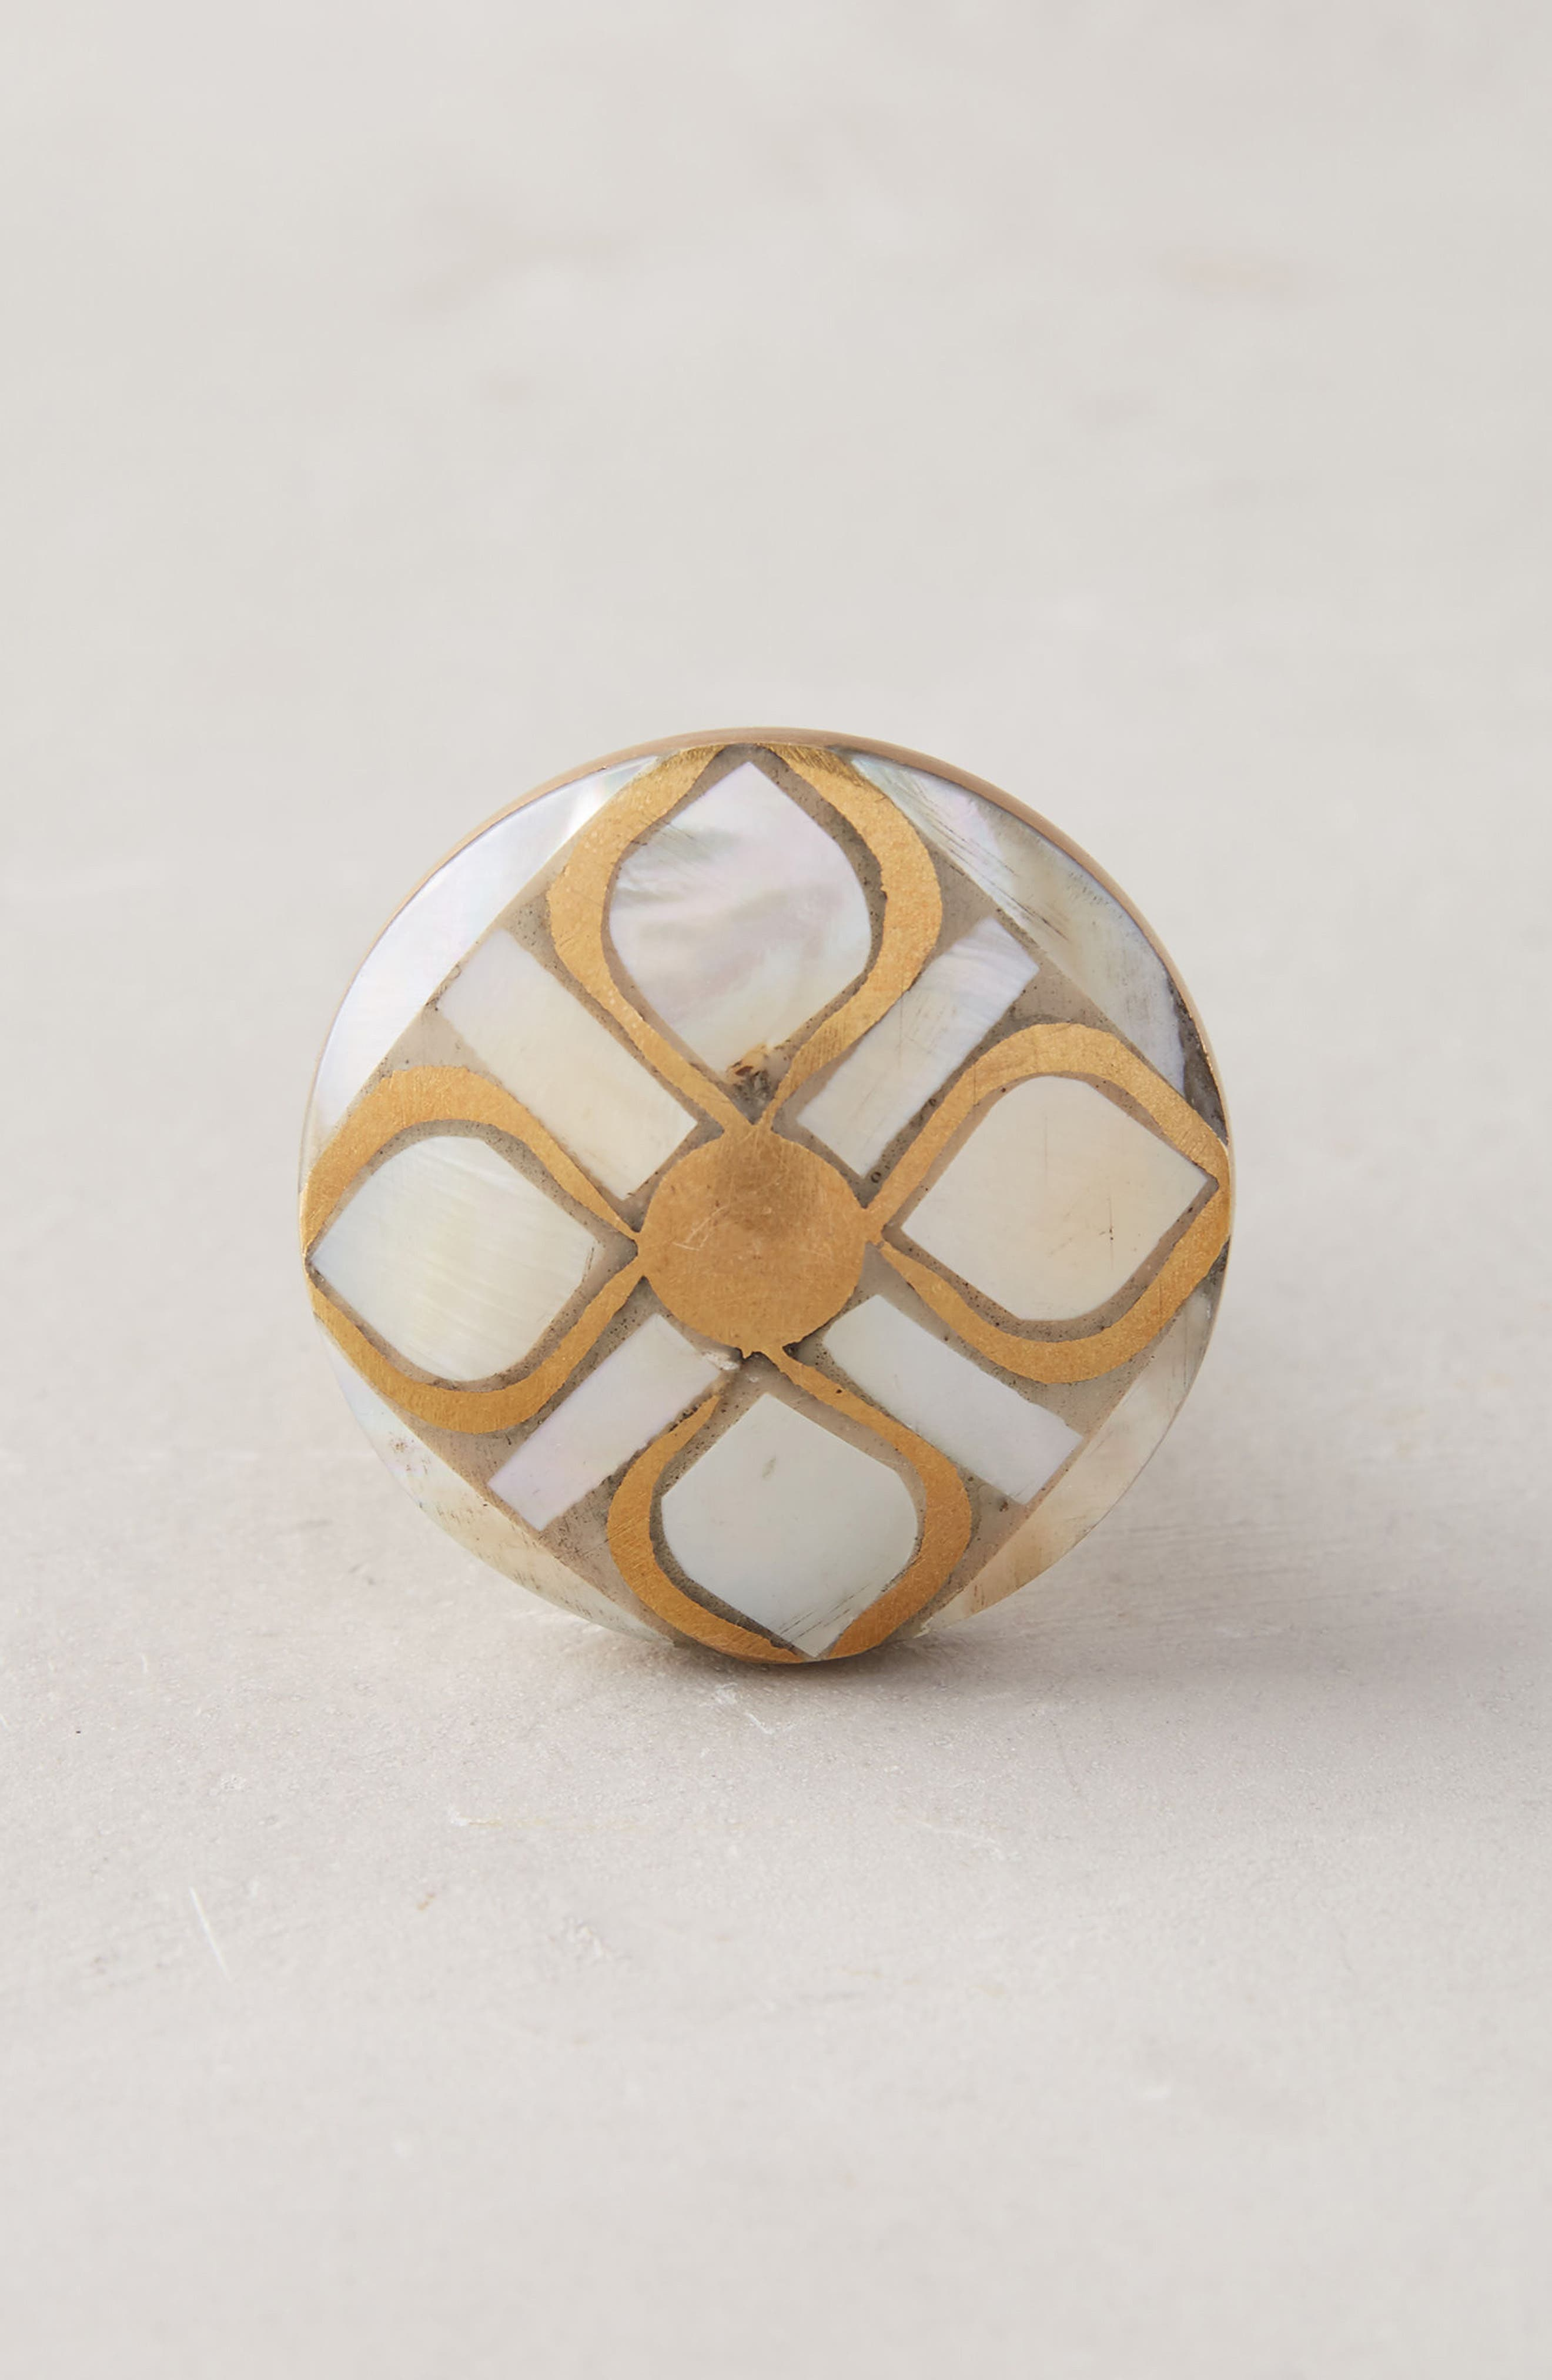 Serpentine Mother of Pearl Knob,                             Main thumbnail 1, color,                             Neutral